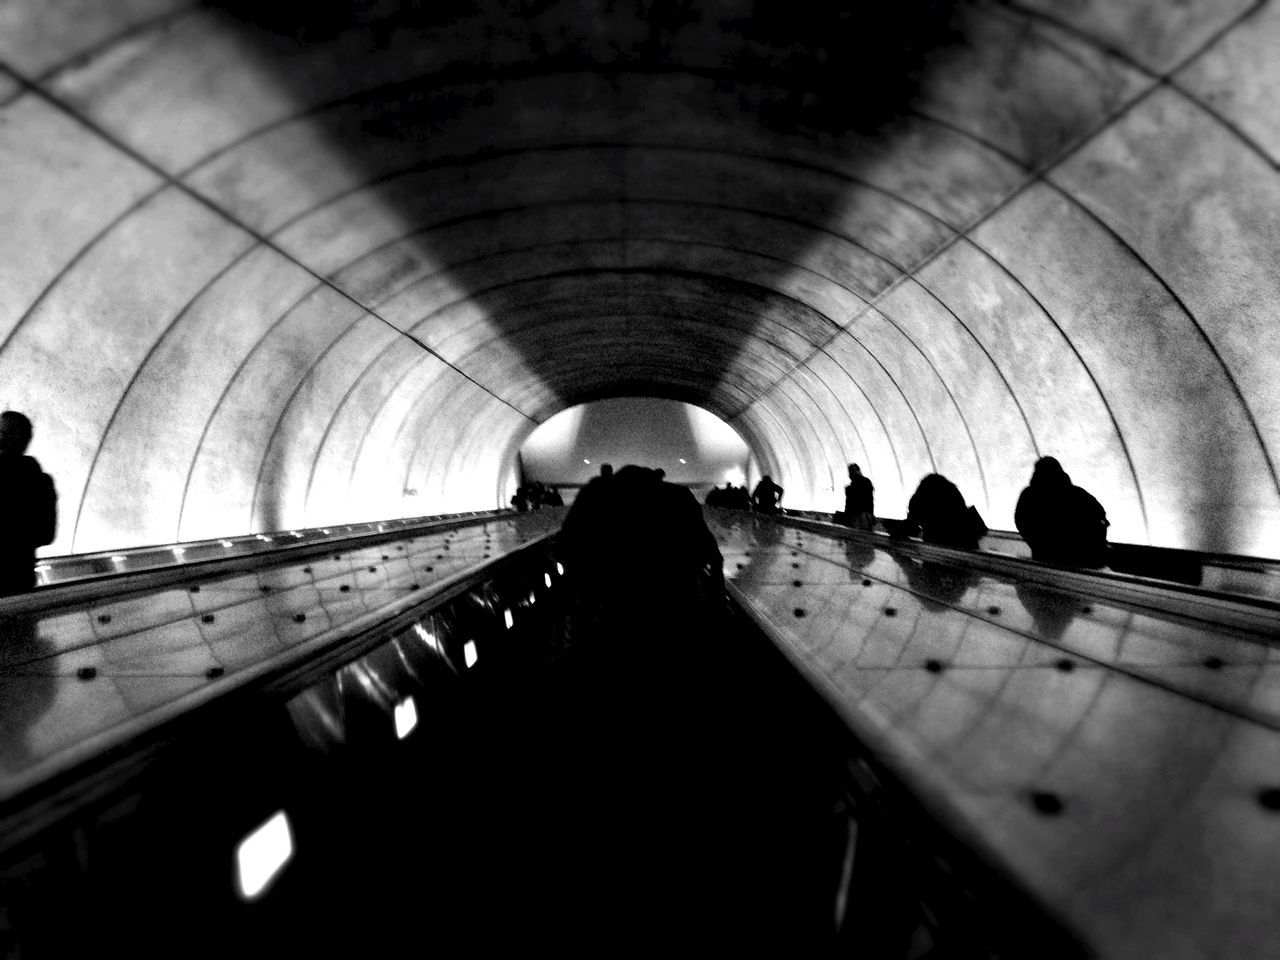 Silhouette people on escalator